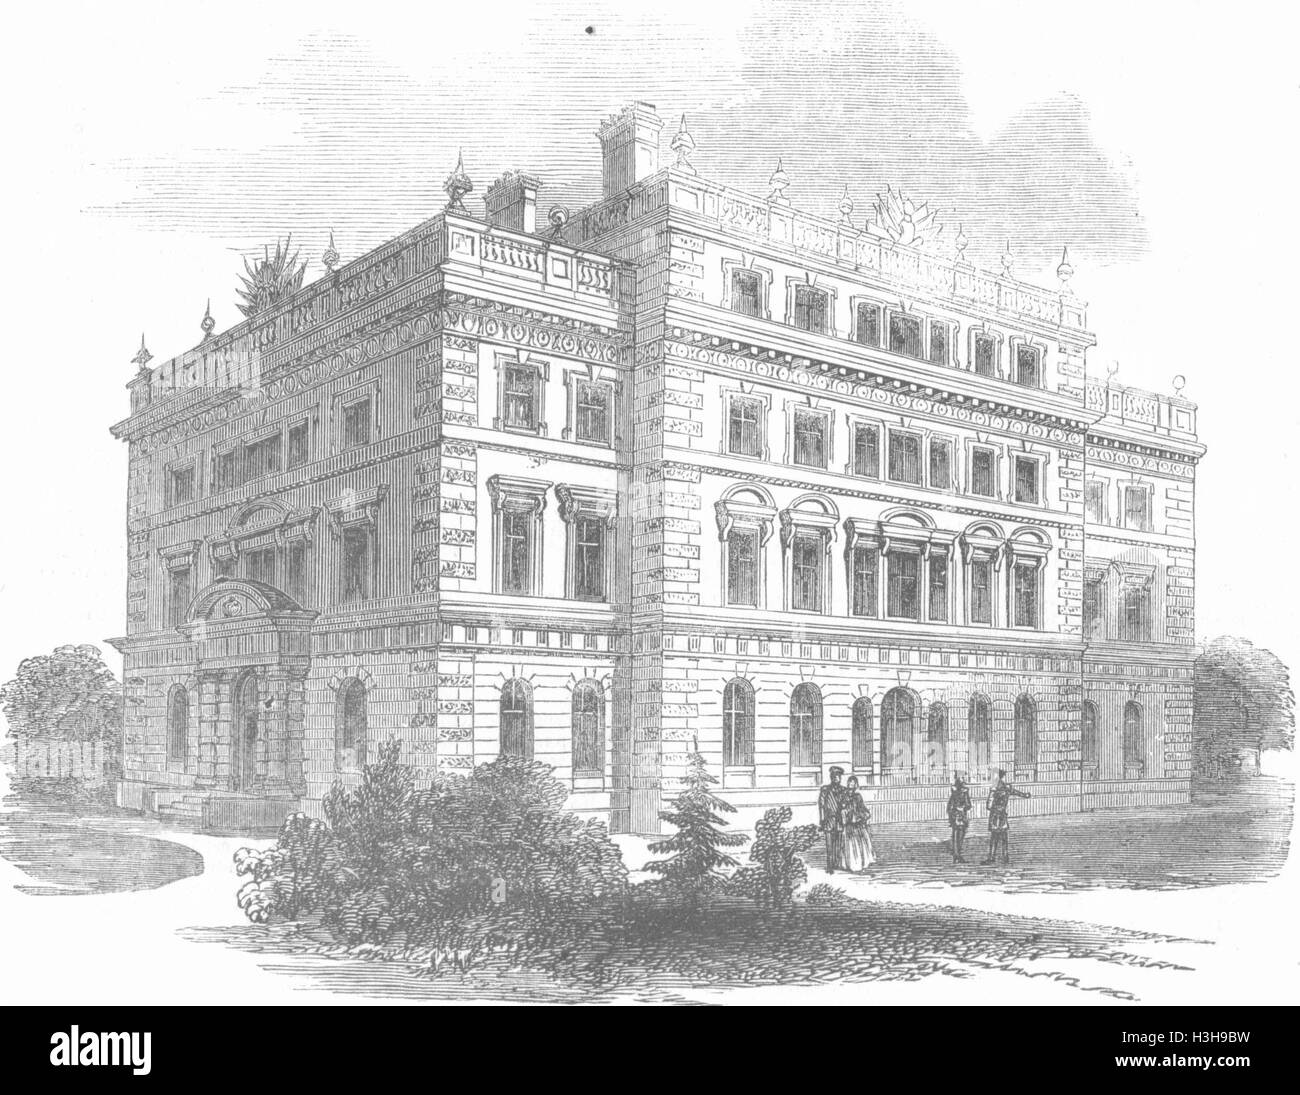 LONDON Cavalry College, Richmond keystone laid, 1857. Illustrated London News - Stock Image